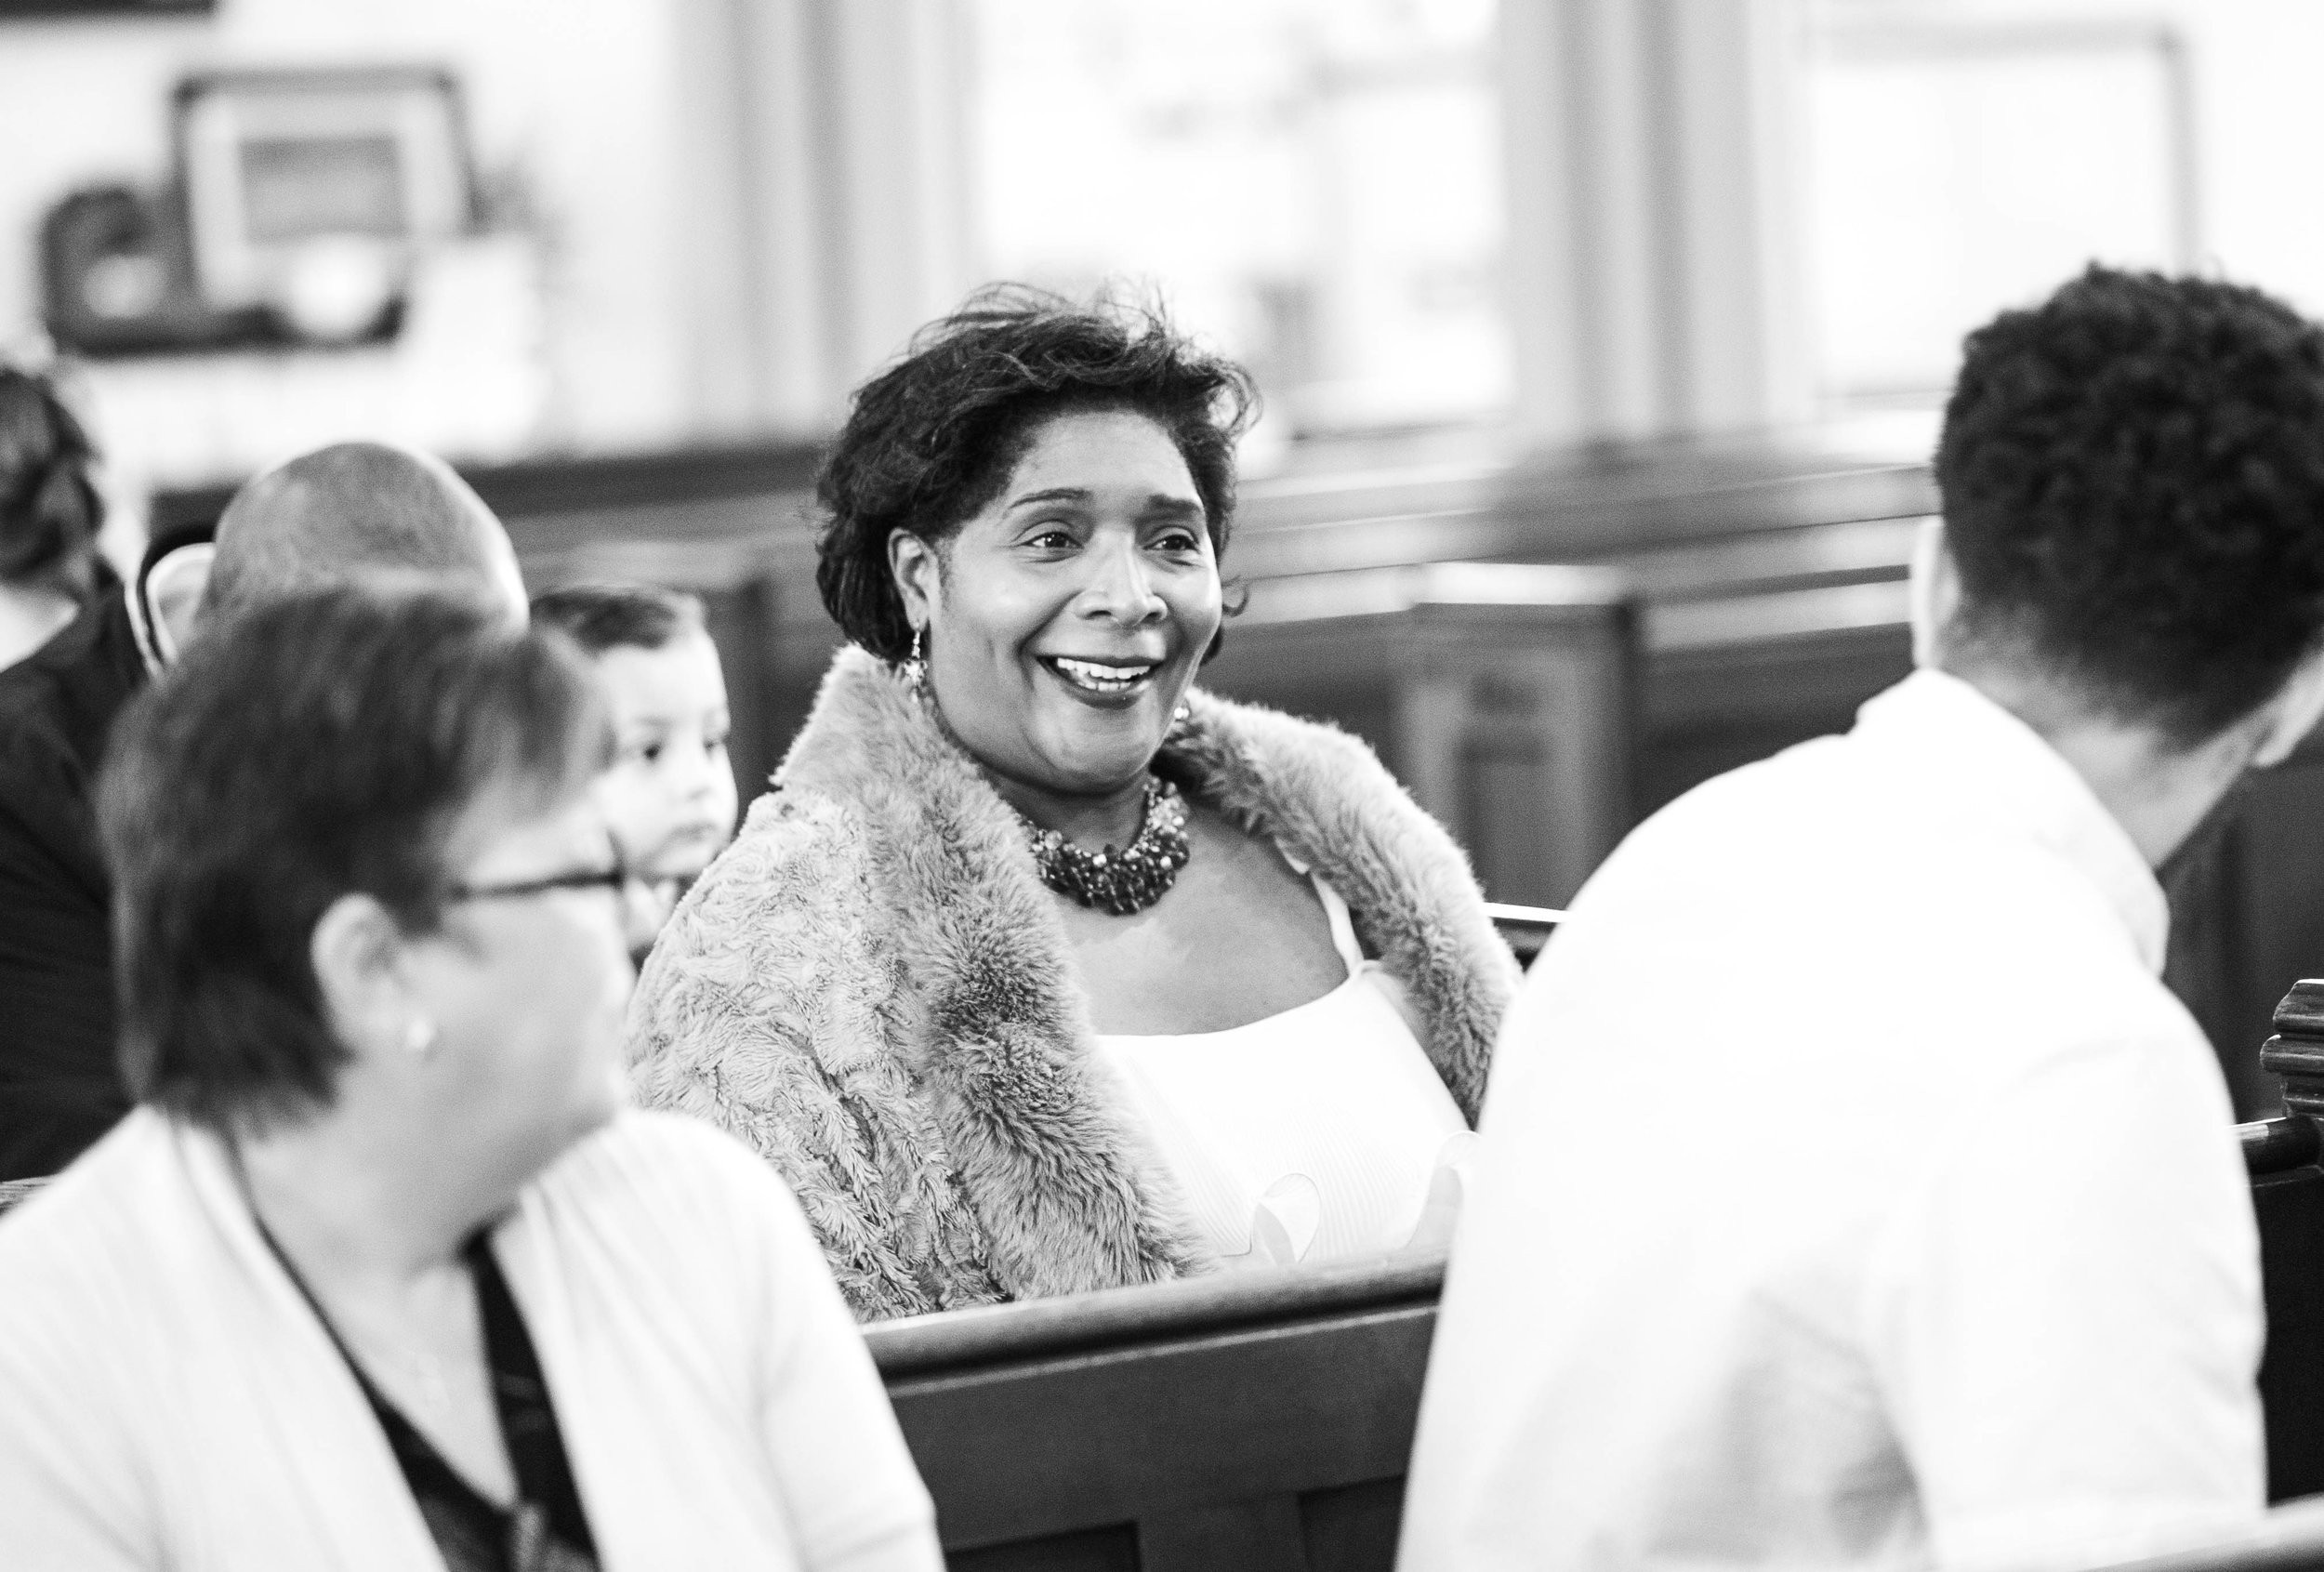 Lea-cooper-photography-christening-photographer-baptism-wolverhampton-wednesbury-walsall-willenhall-dudley-church-chapel-event-photography-5.jpg